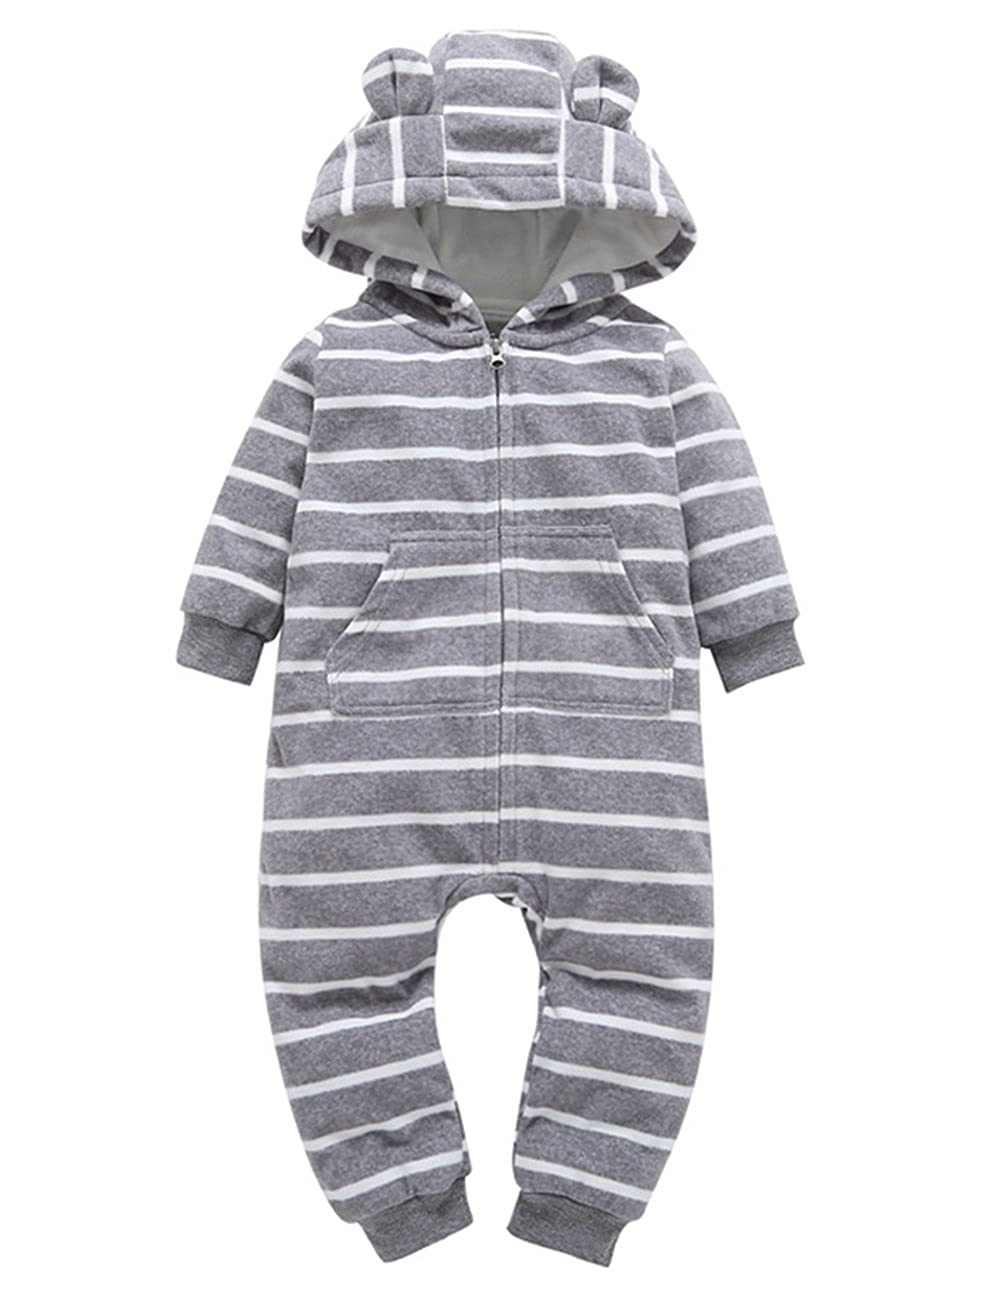 Weant Baby Boy Girl Clothes Newborn Winter Outfits Onesie Thicker Skull Hooded Romper Jumpsuit Home Clothes